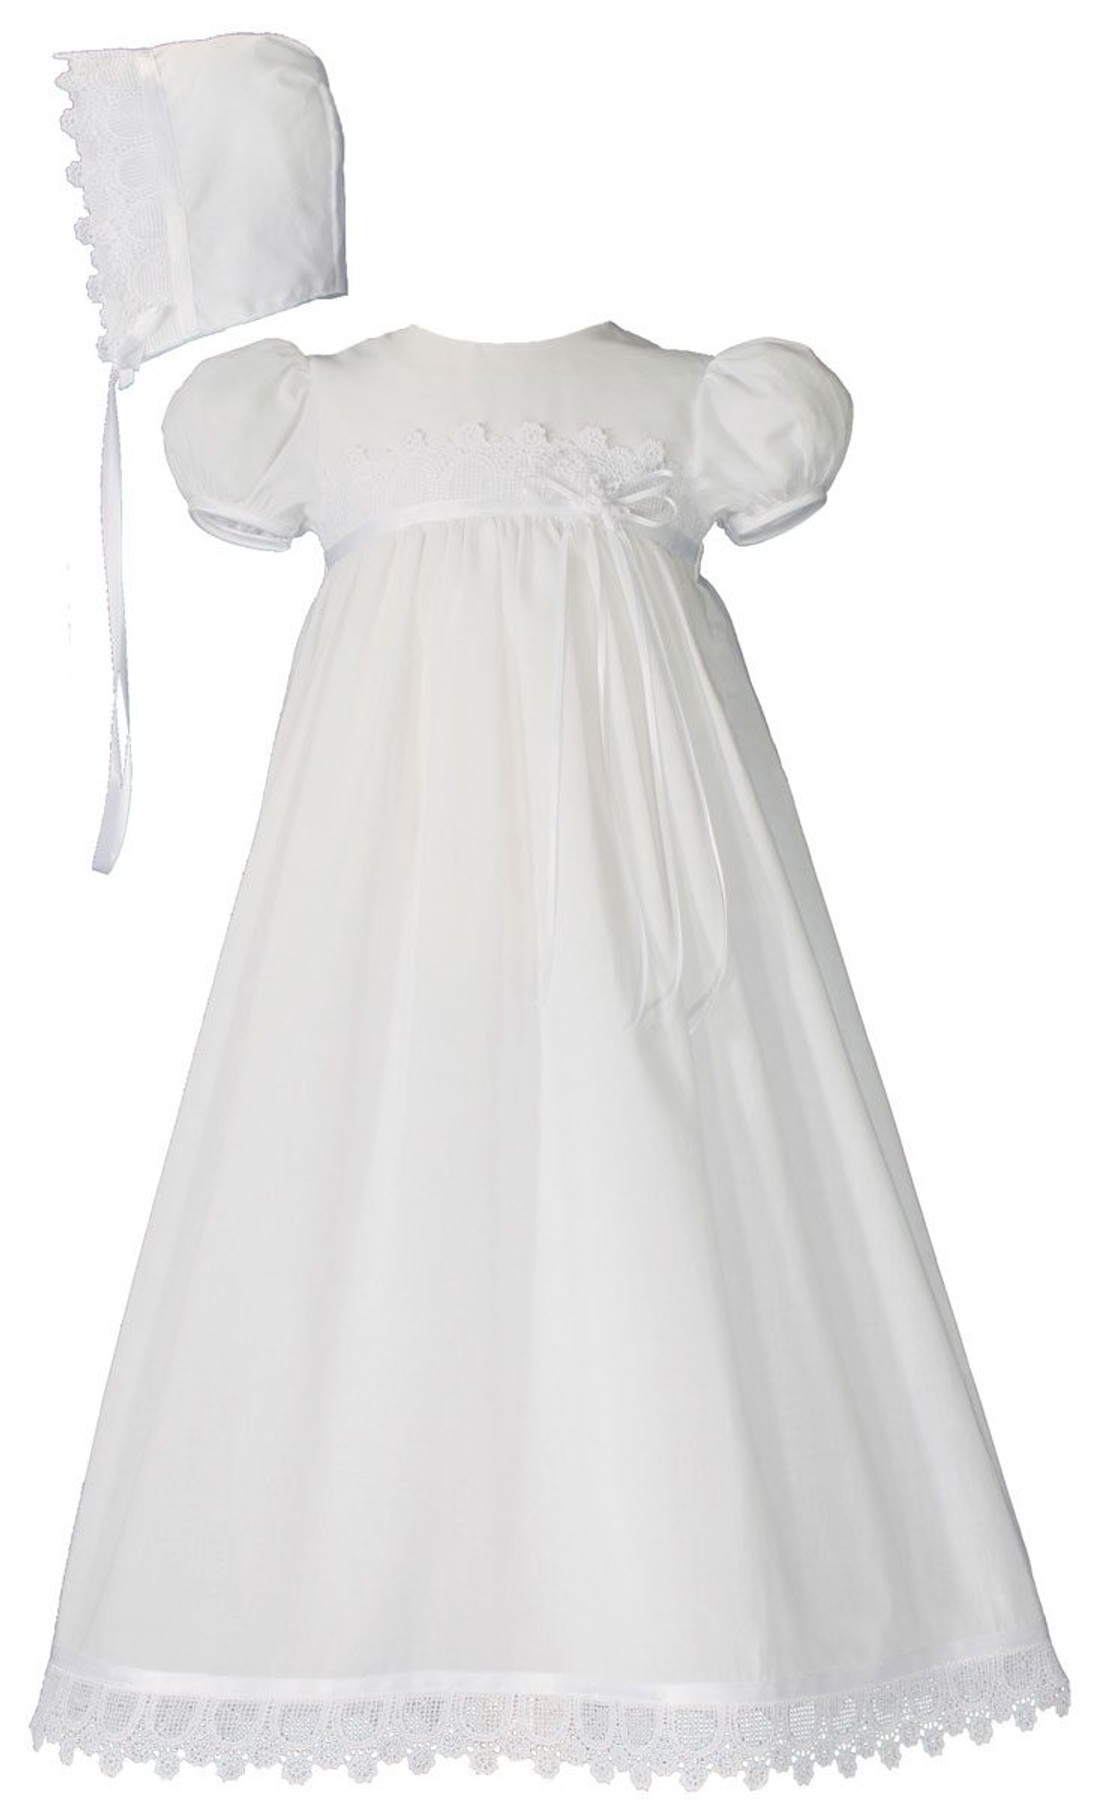 Girls Cotton Christening Gown With Italian Lace 26 Length